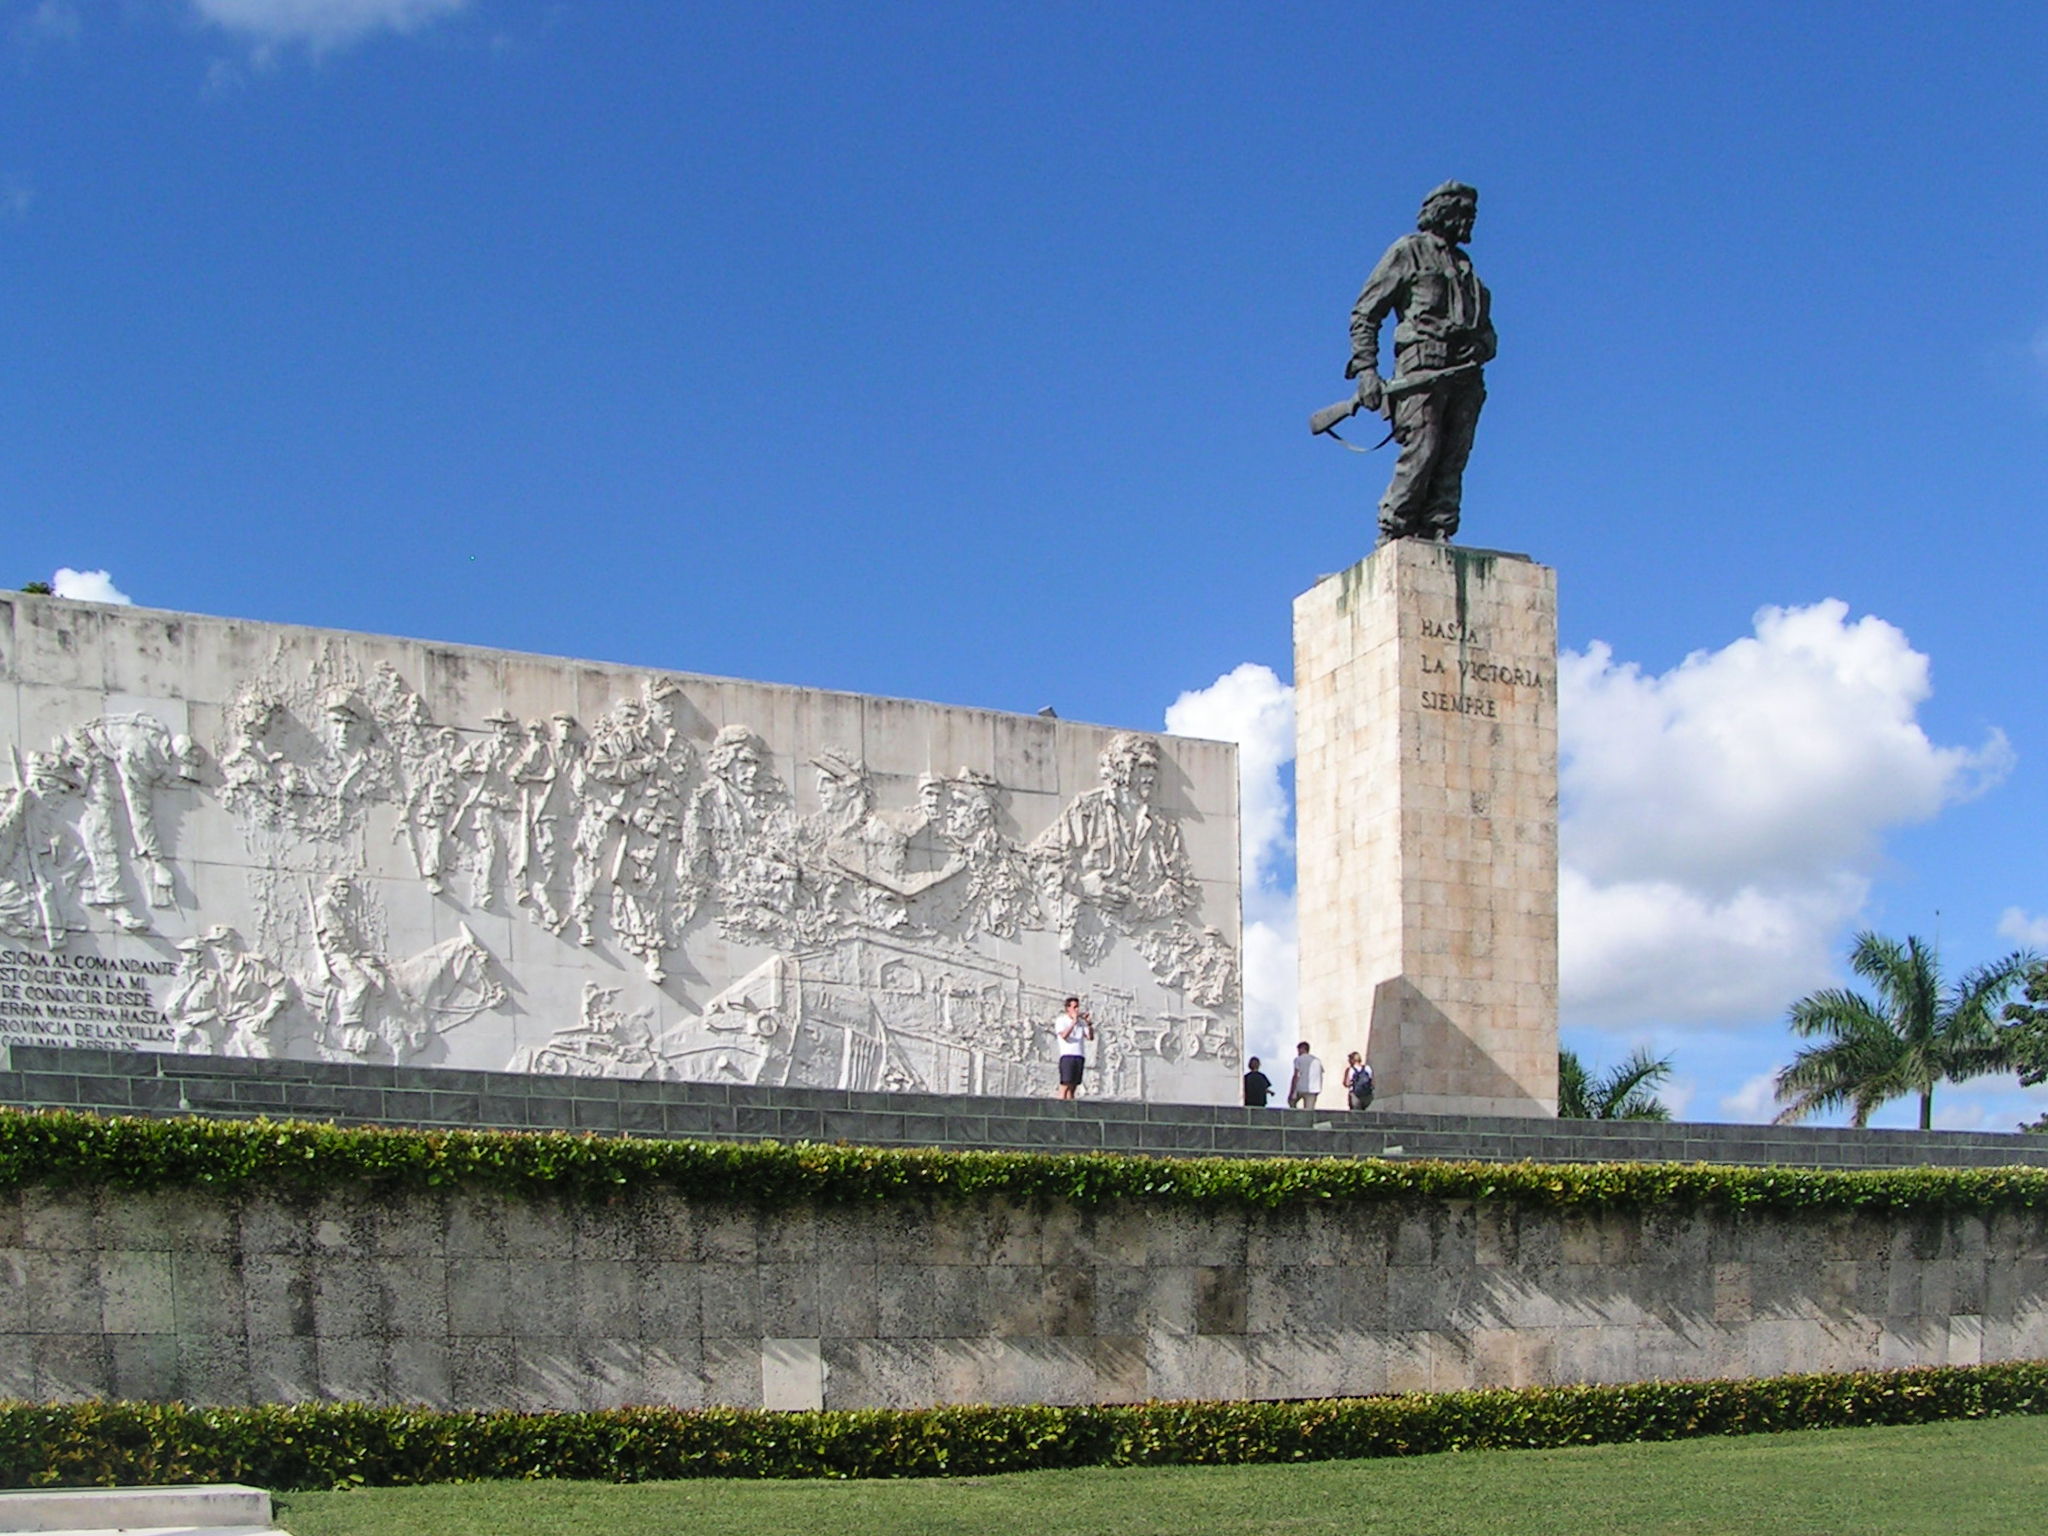 things to do in cuba - Che Guevara Mausoleum